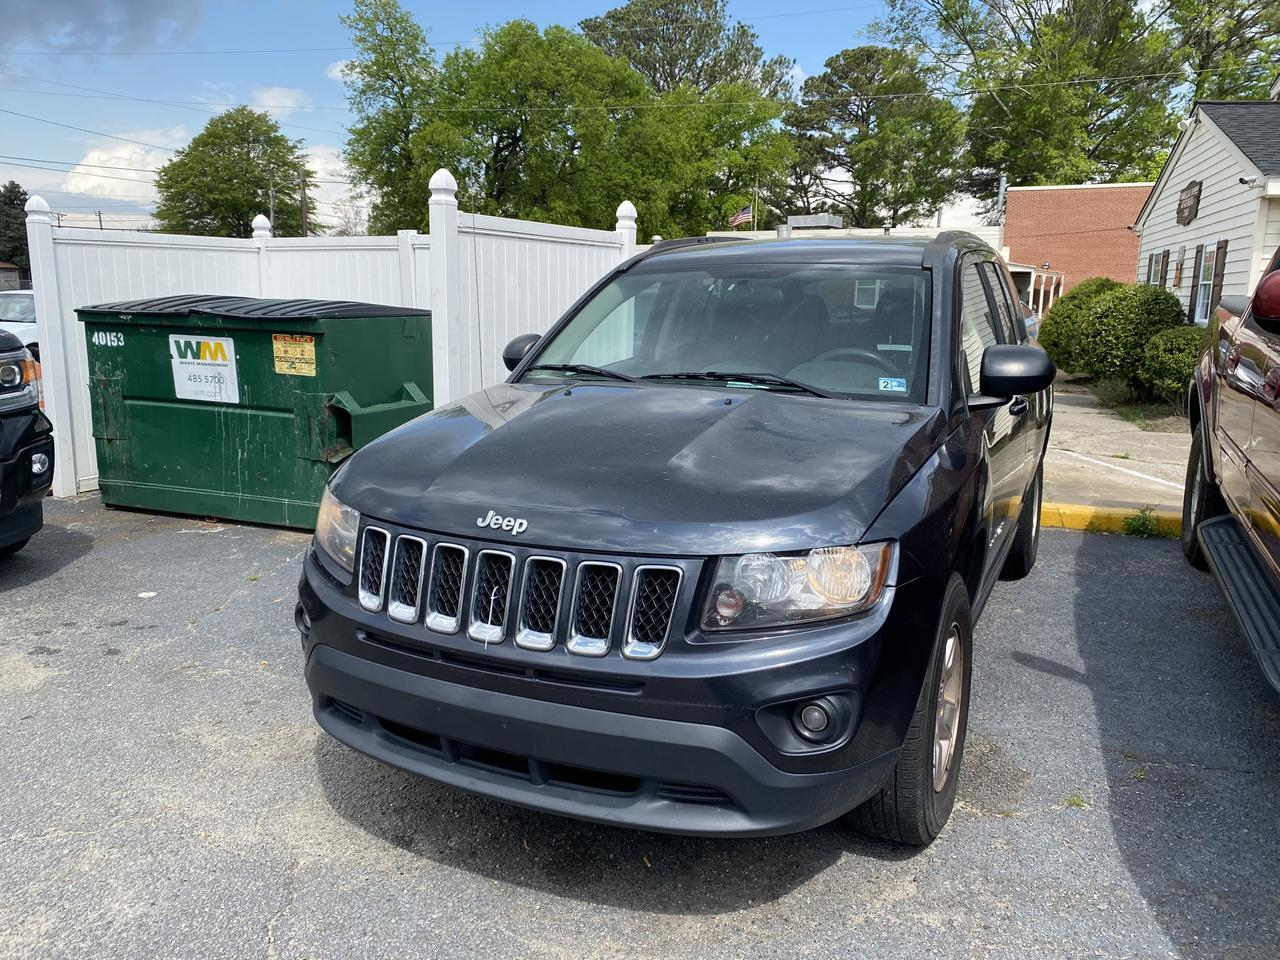 2014 JEEP COMPASS SPORT, WHOLESALE TO THE PUBLIC, PUSH PULL OR TOW, NEEDS TRANSMISSION, CHEAP BUY, $1,000 OBO! Norfolk VA